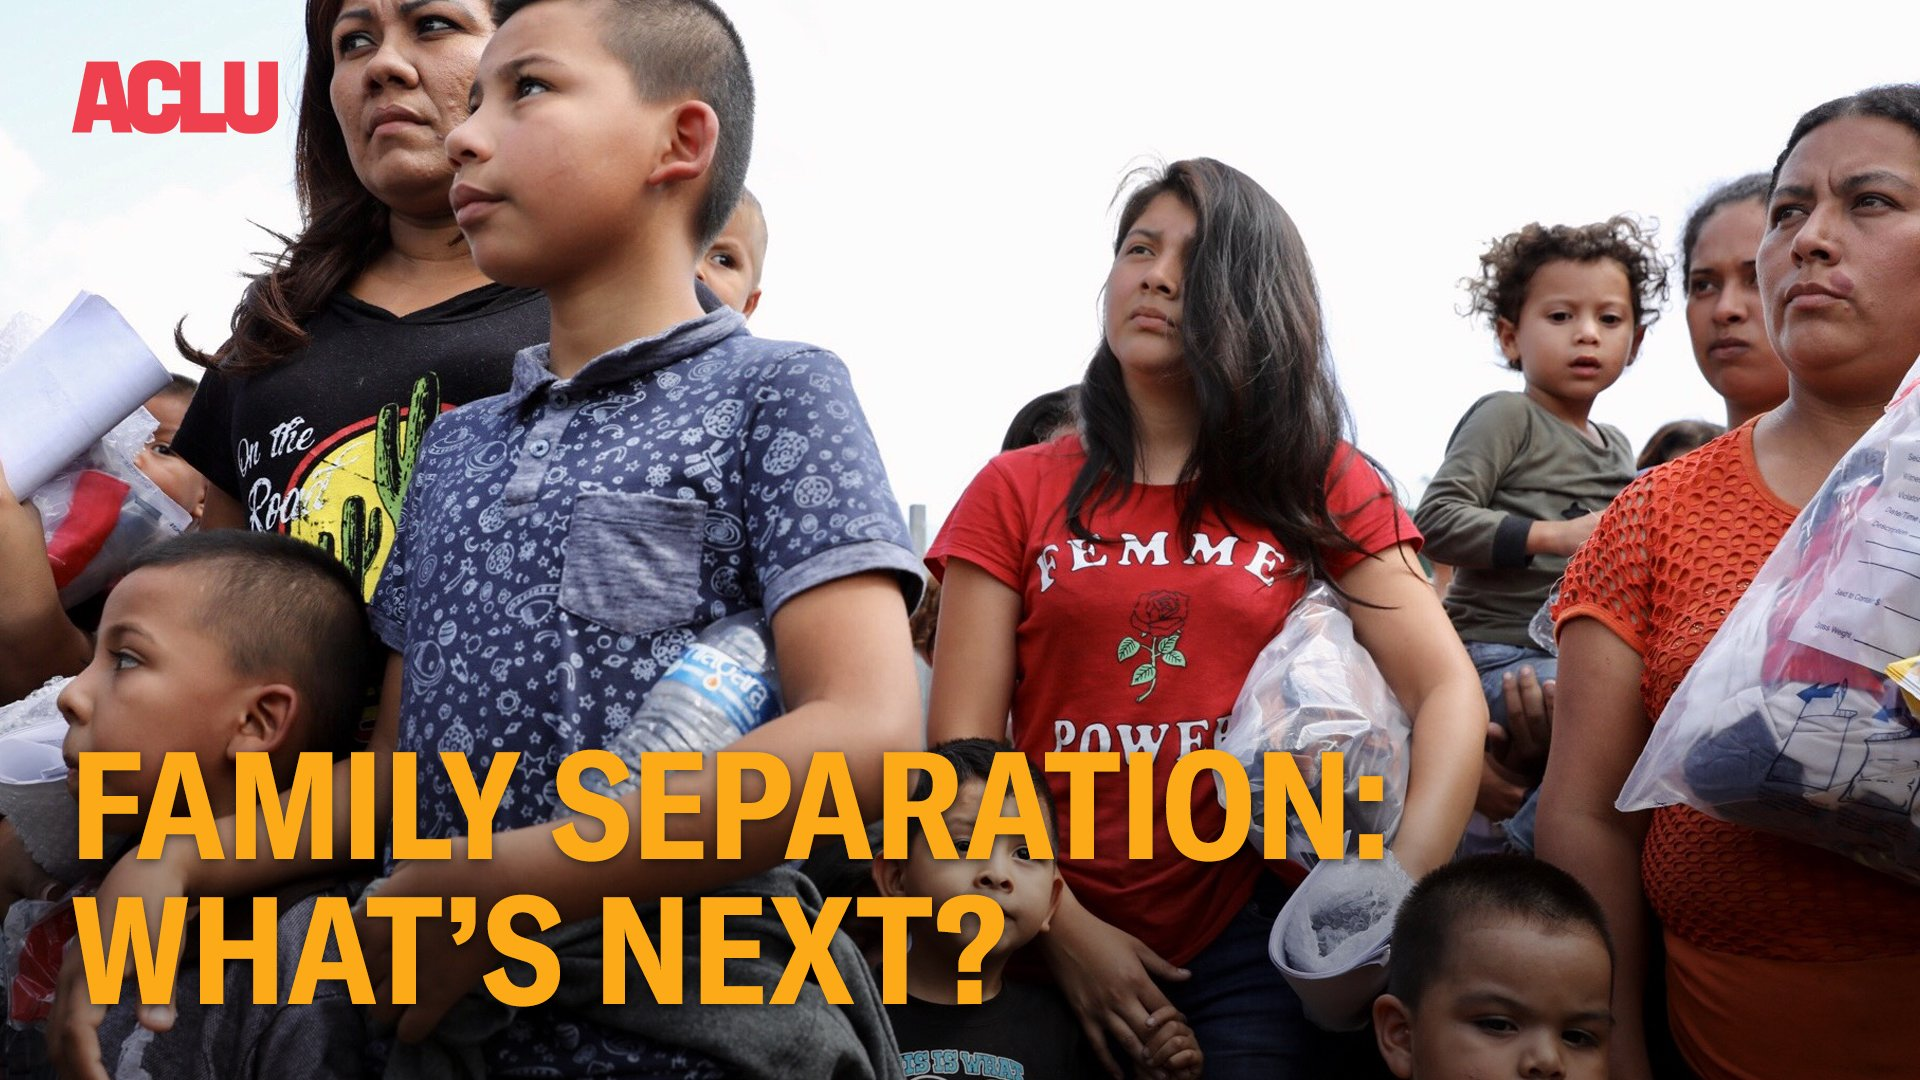 Here's what the Trump administration doesn't want you to know about its executive order on family separation: https://t.co/6FuJxNxLyP